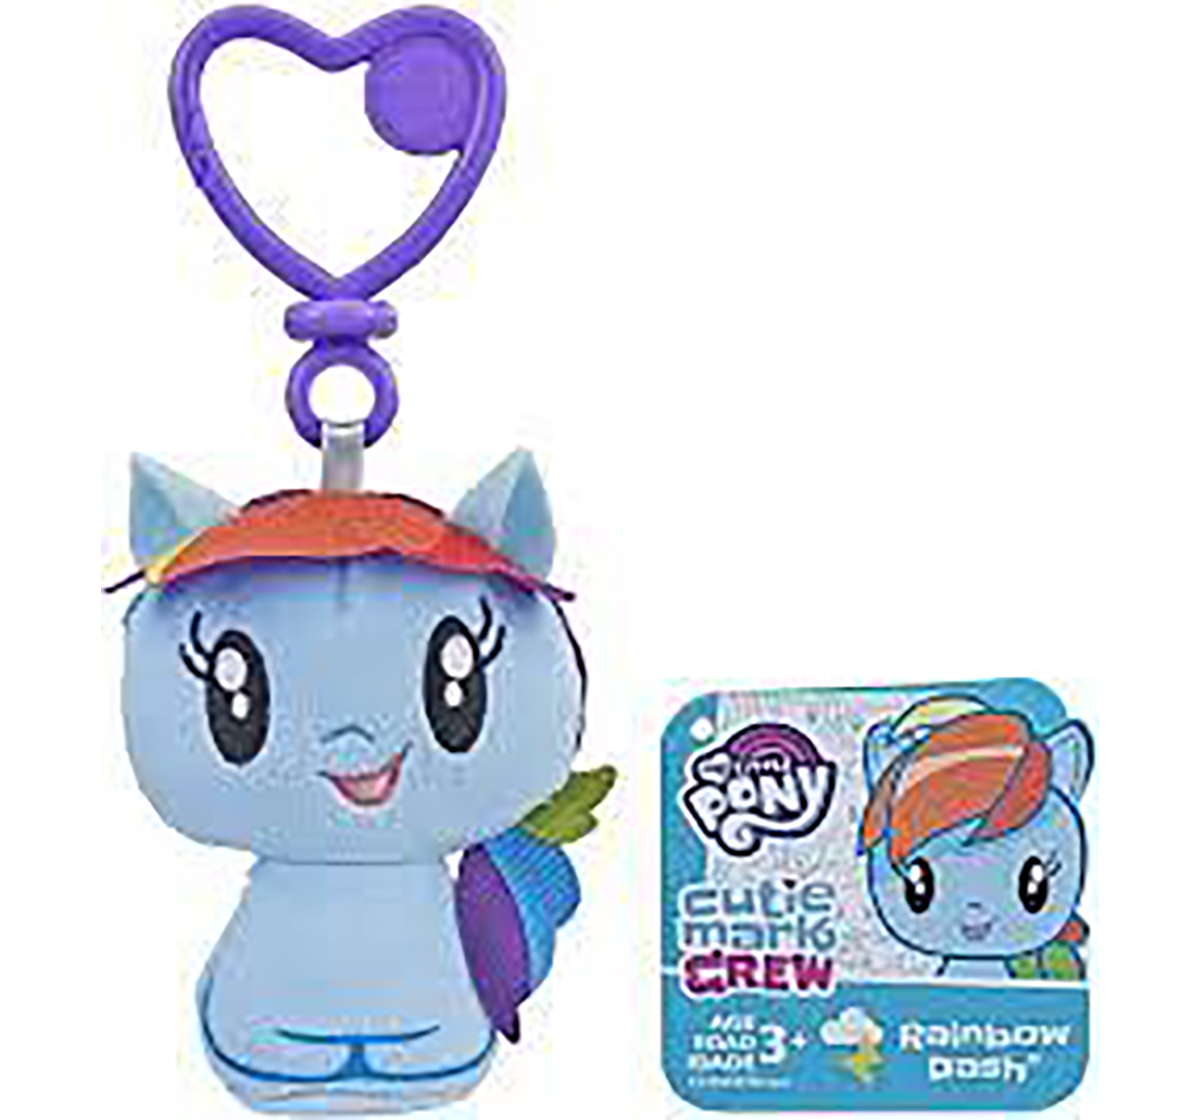 My Little Pony | My Little Pony : Cutie Mark Crew Plush Clip Assorted Collectible Dolls for Girls age 3Y+